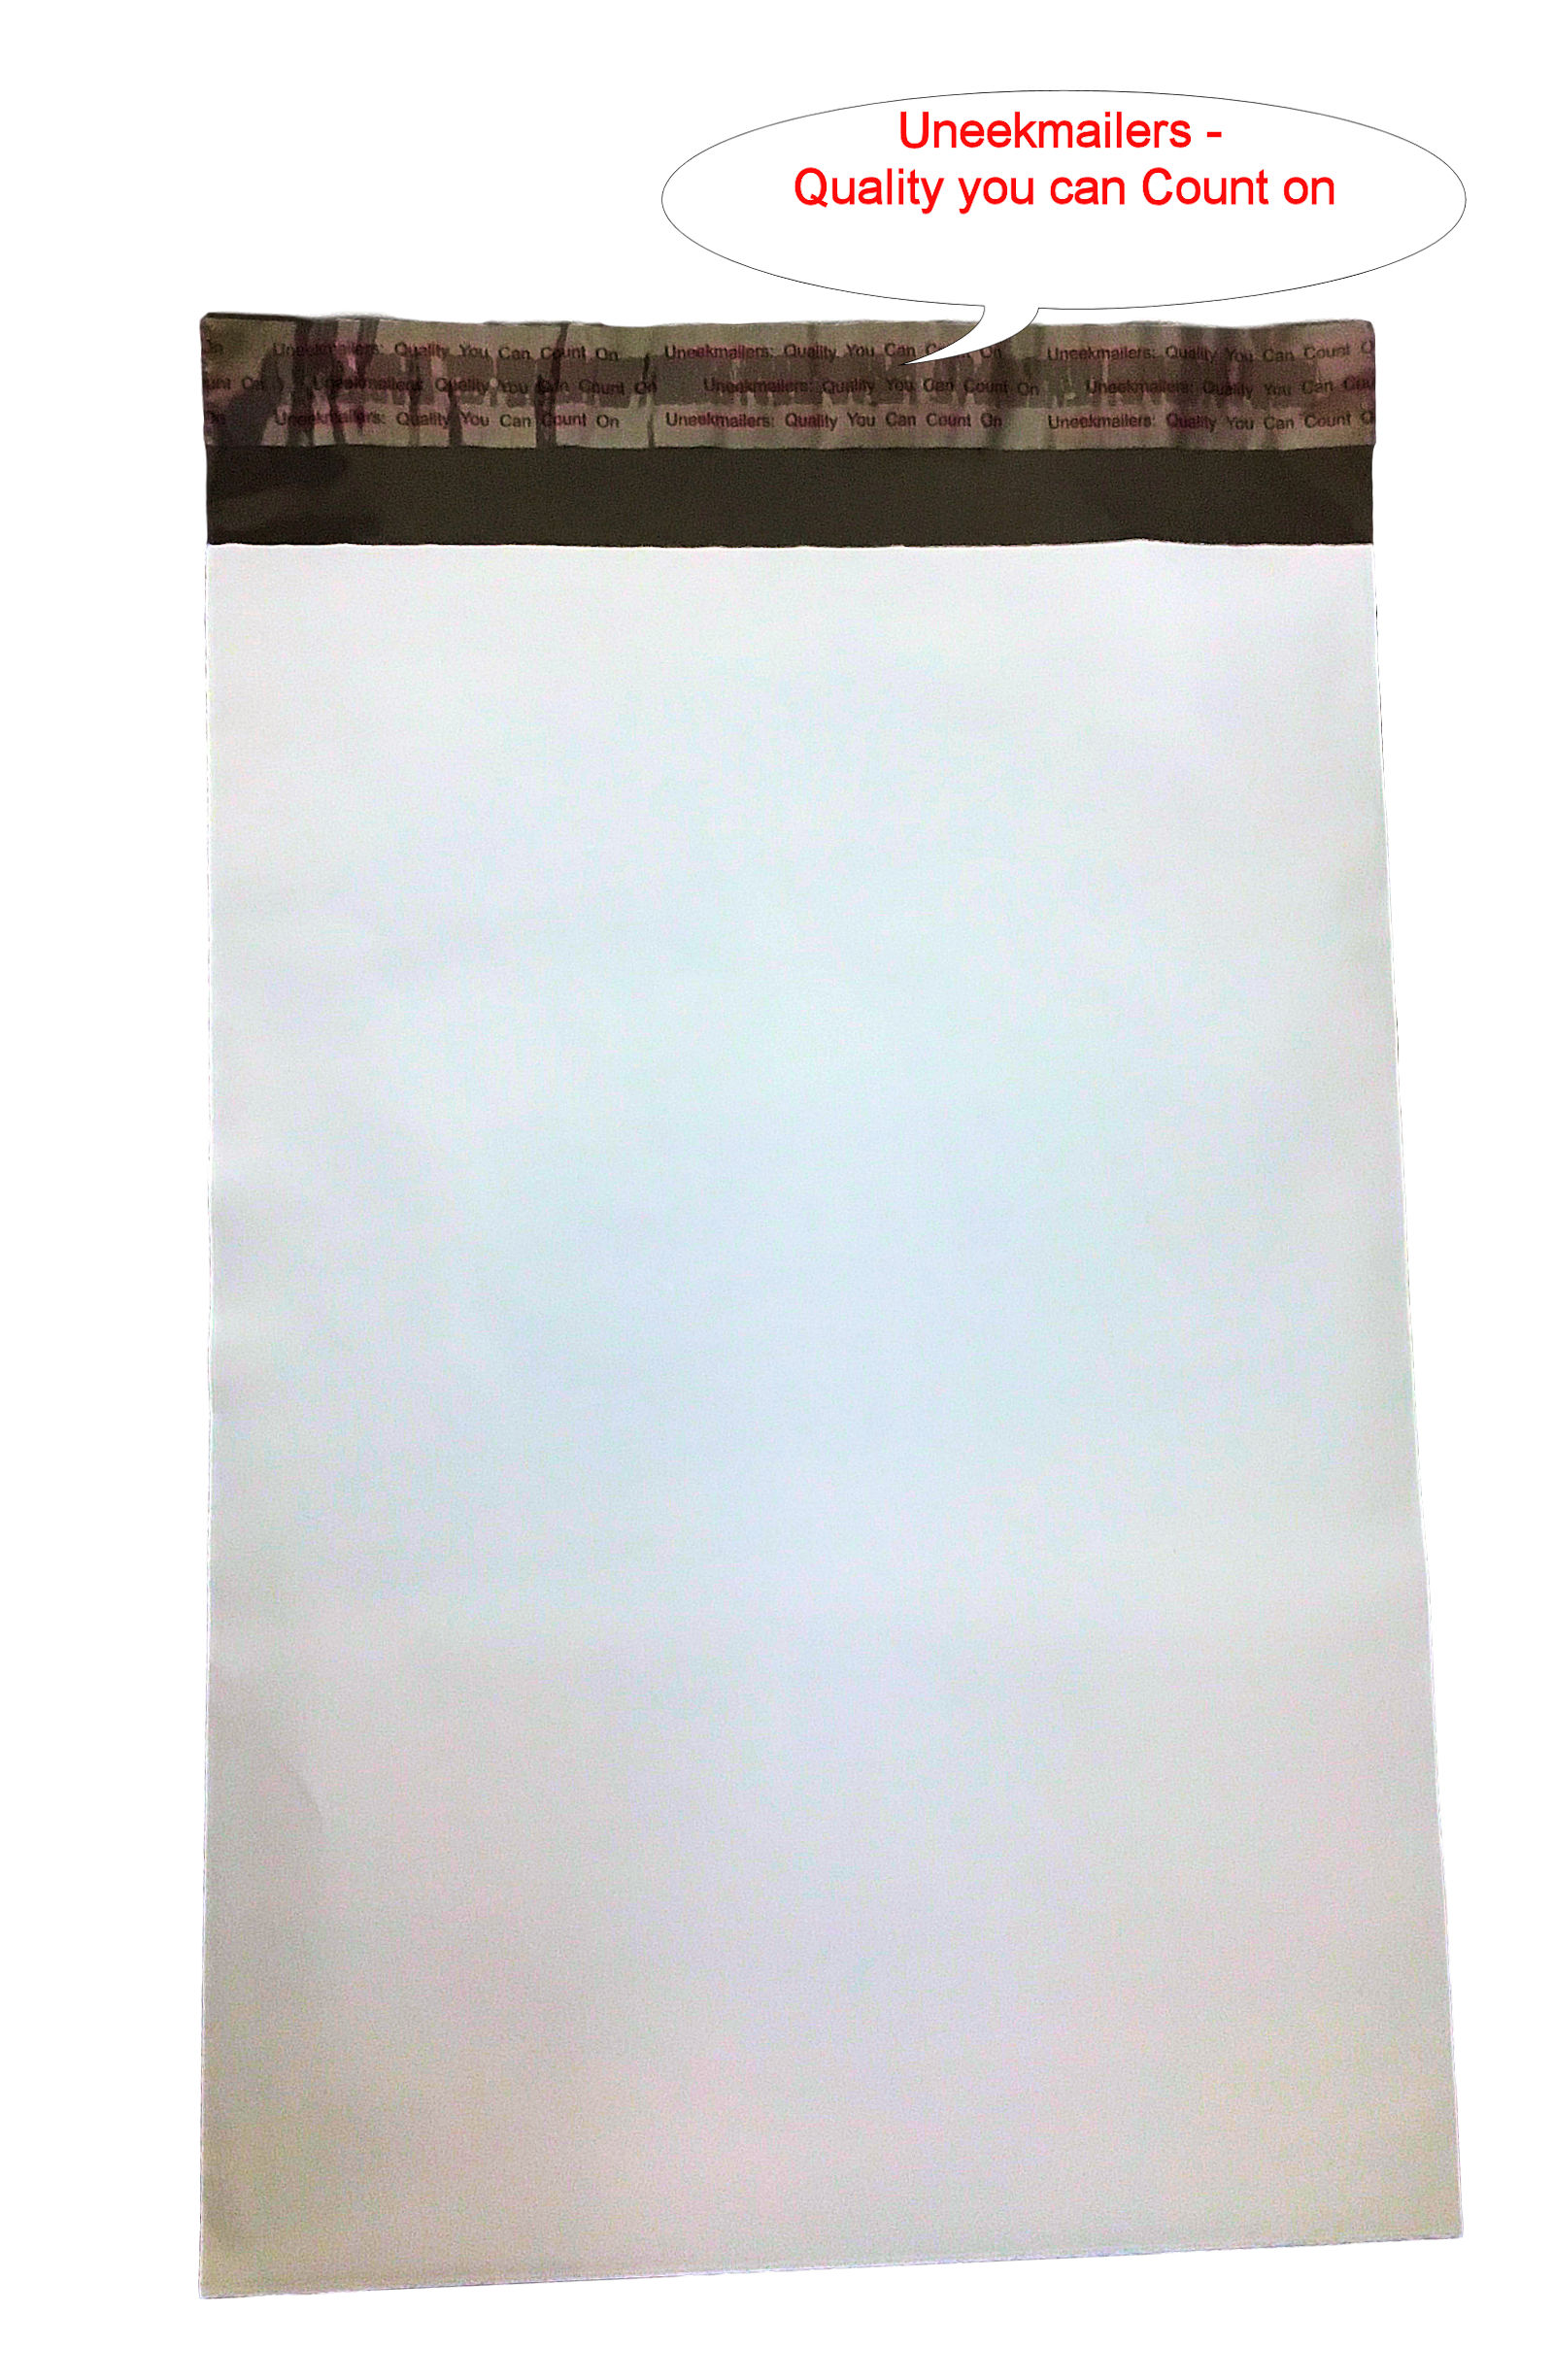 500 12x16 White Poly Mailer Plastic Shipping Mailing Bag Envelopes Polybags Polymailer Line